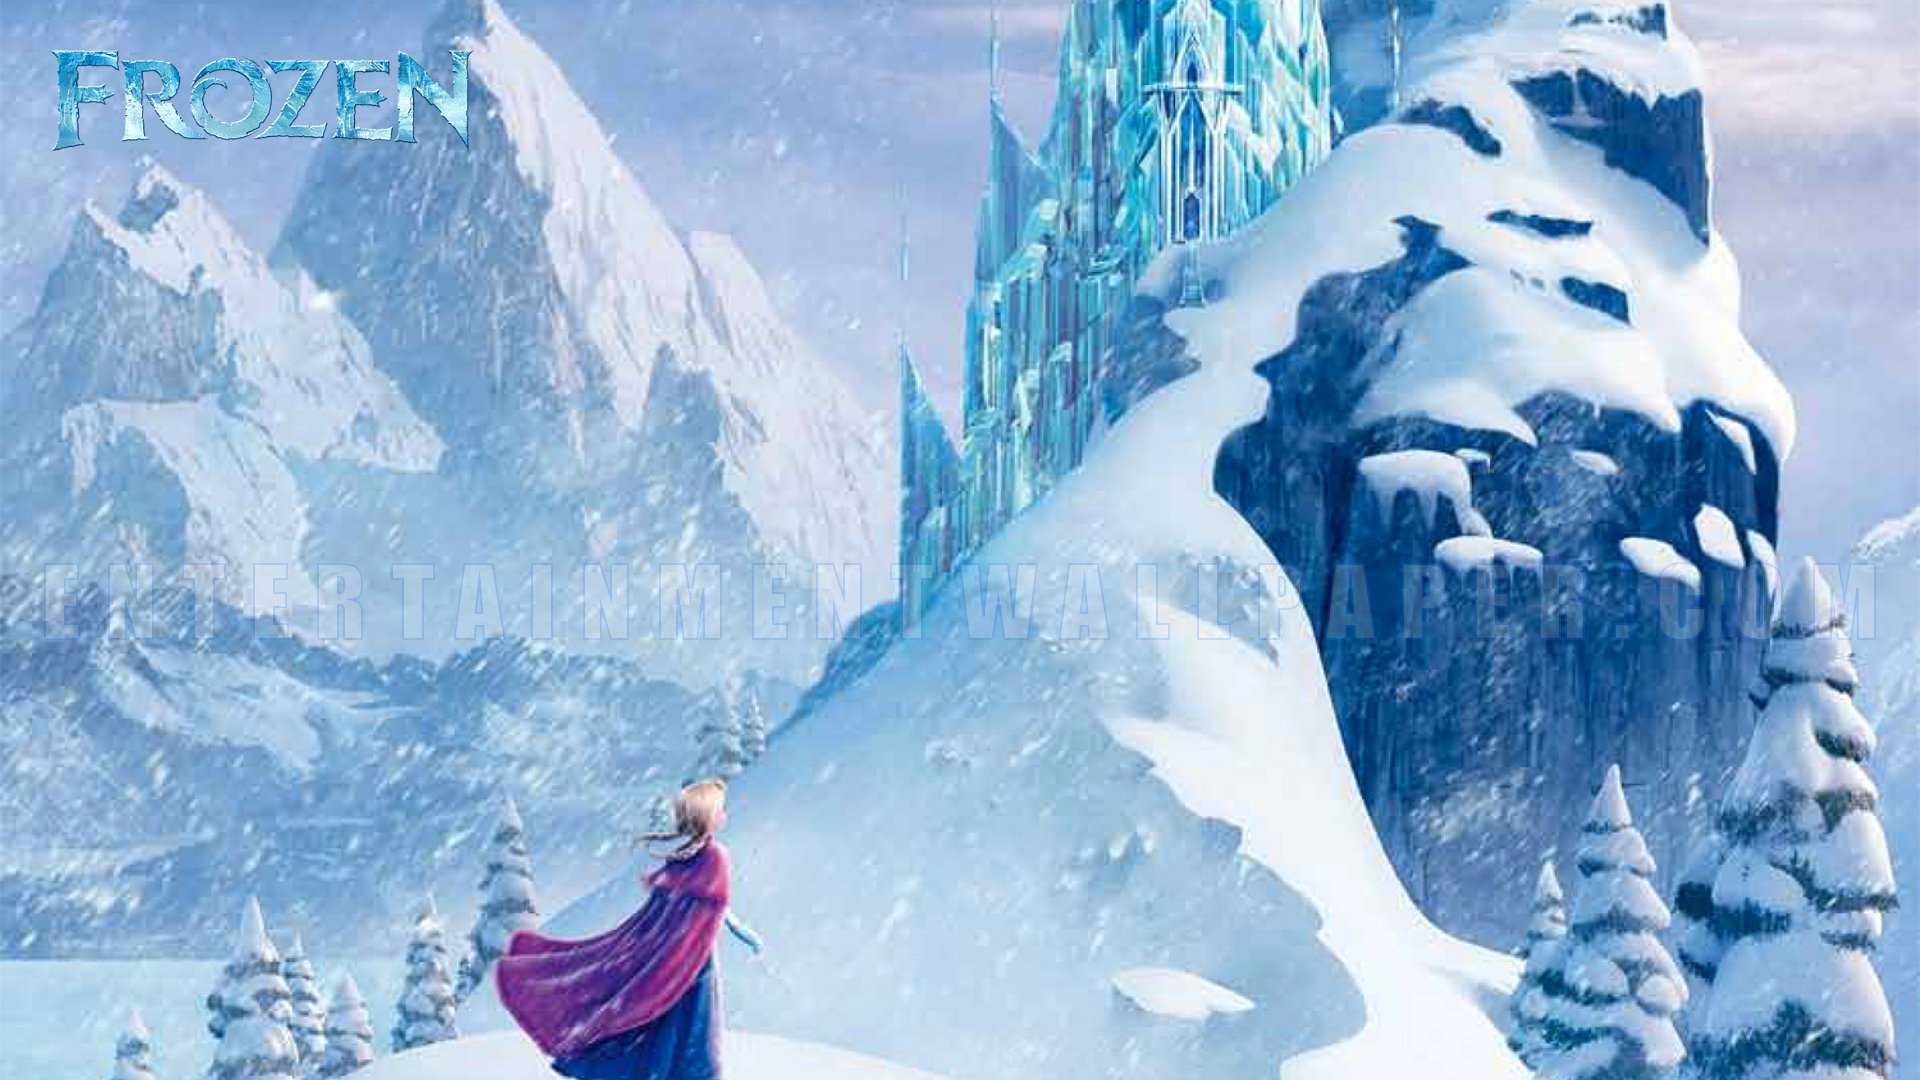 hd wallpaper frozen - photo #30